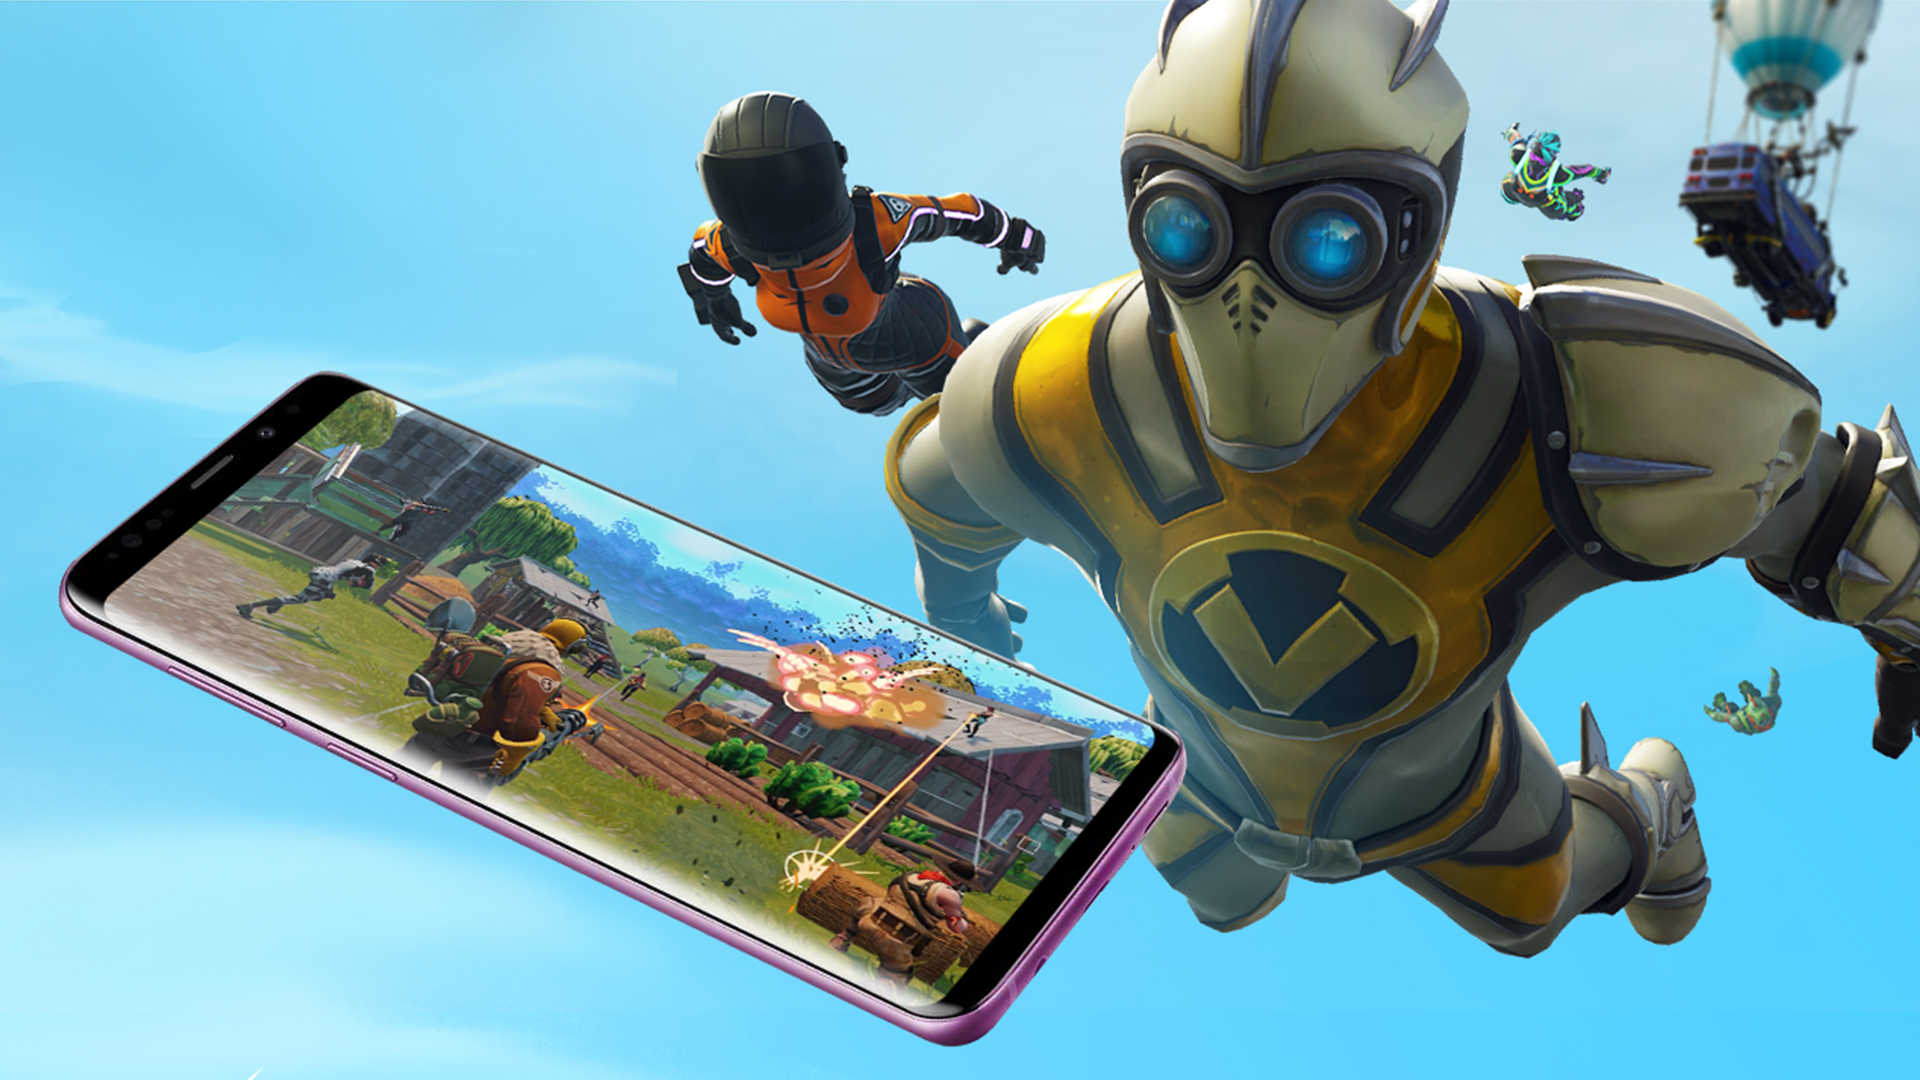 epic games fortnite android download free full version